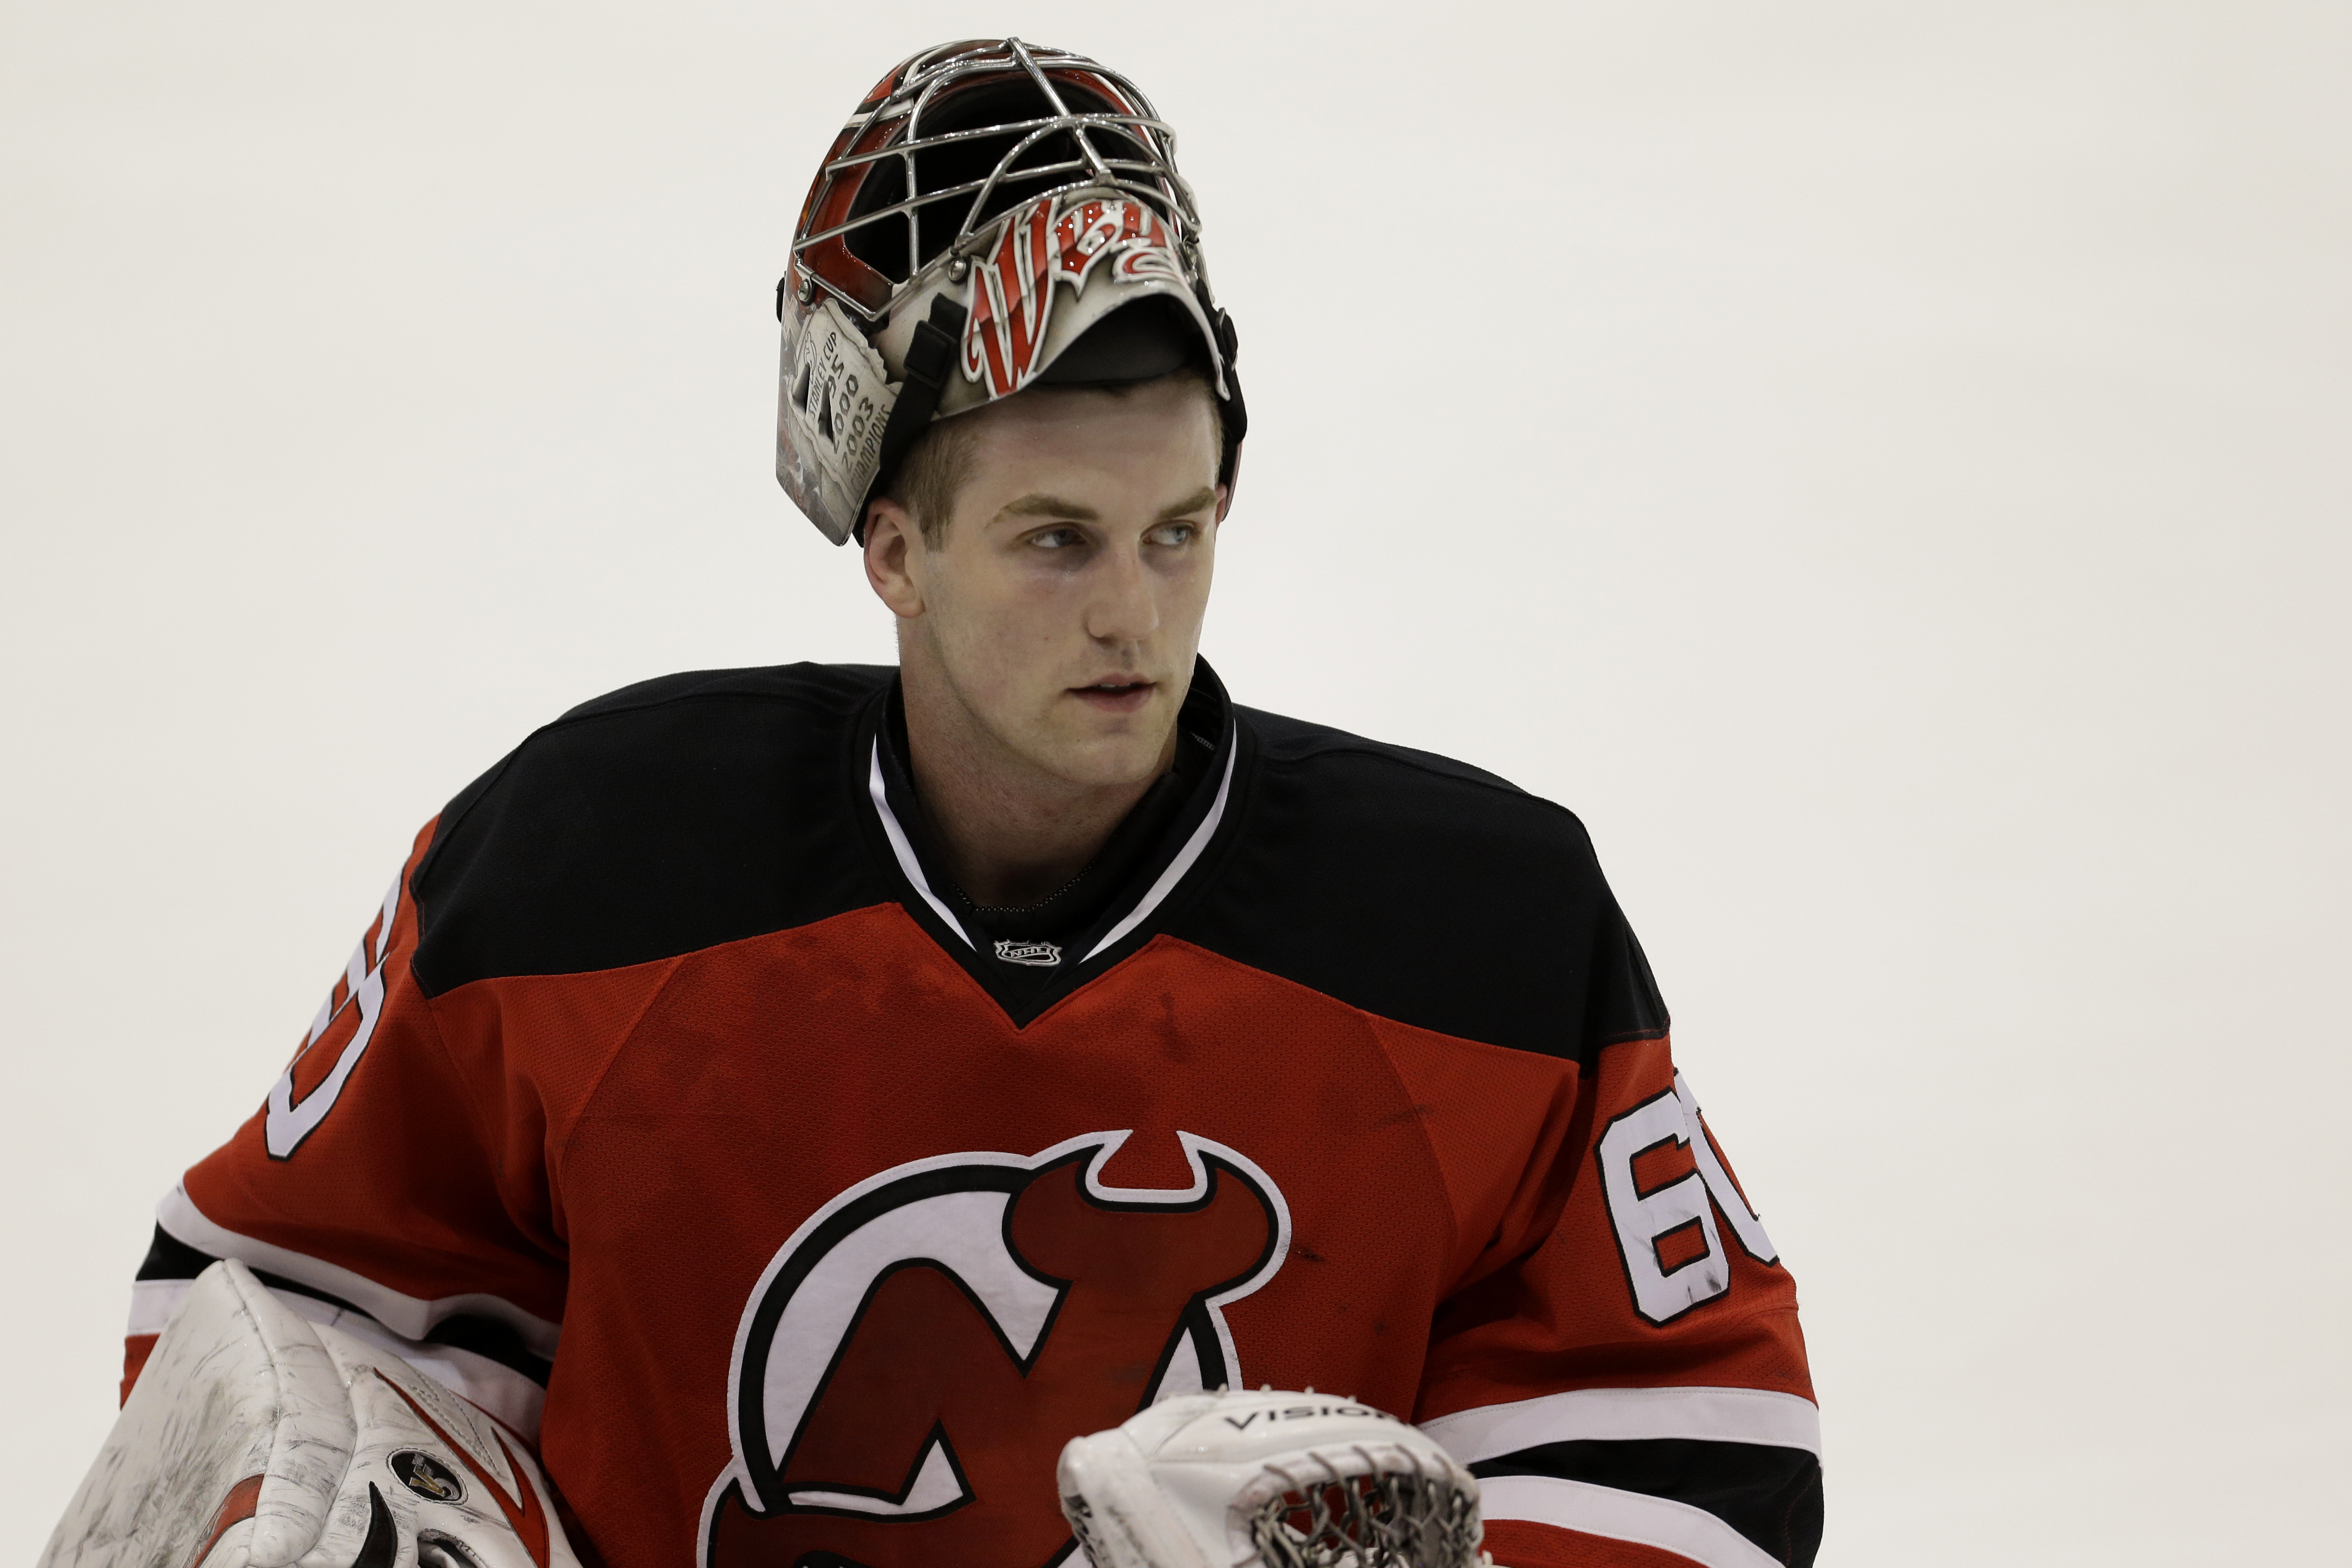 Scott Wedgewood looks on during a break at the New Jersey Devils NHL hockey rookie camp, Wednesday, July 17, 2013, in Newark, N.J. Anthony Brodeur was drafted by the Devils in the seventh round of the NHL draft last month. (AP Photo/Julio Cortez)